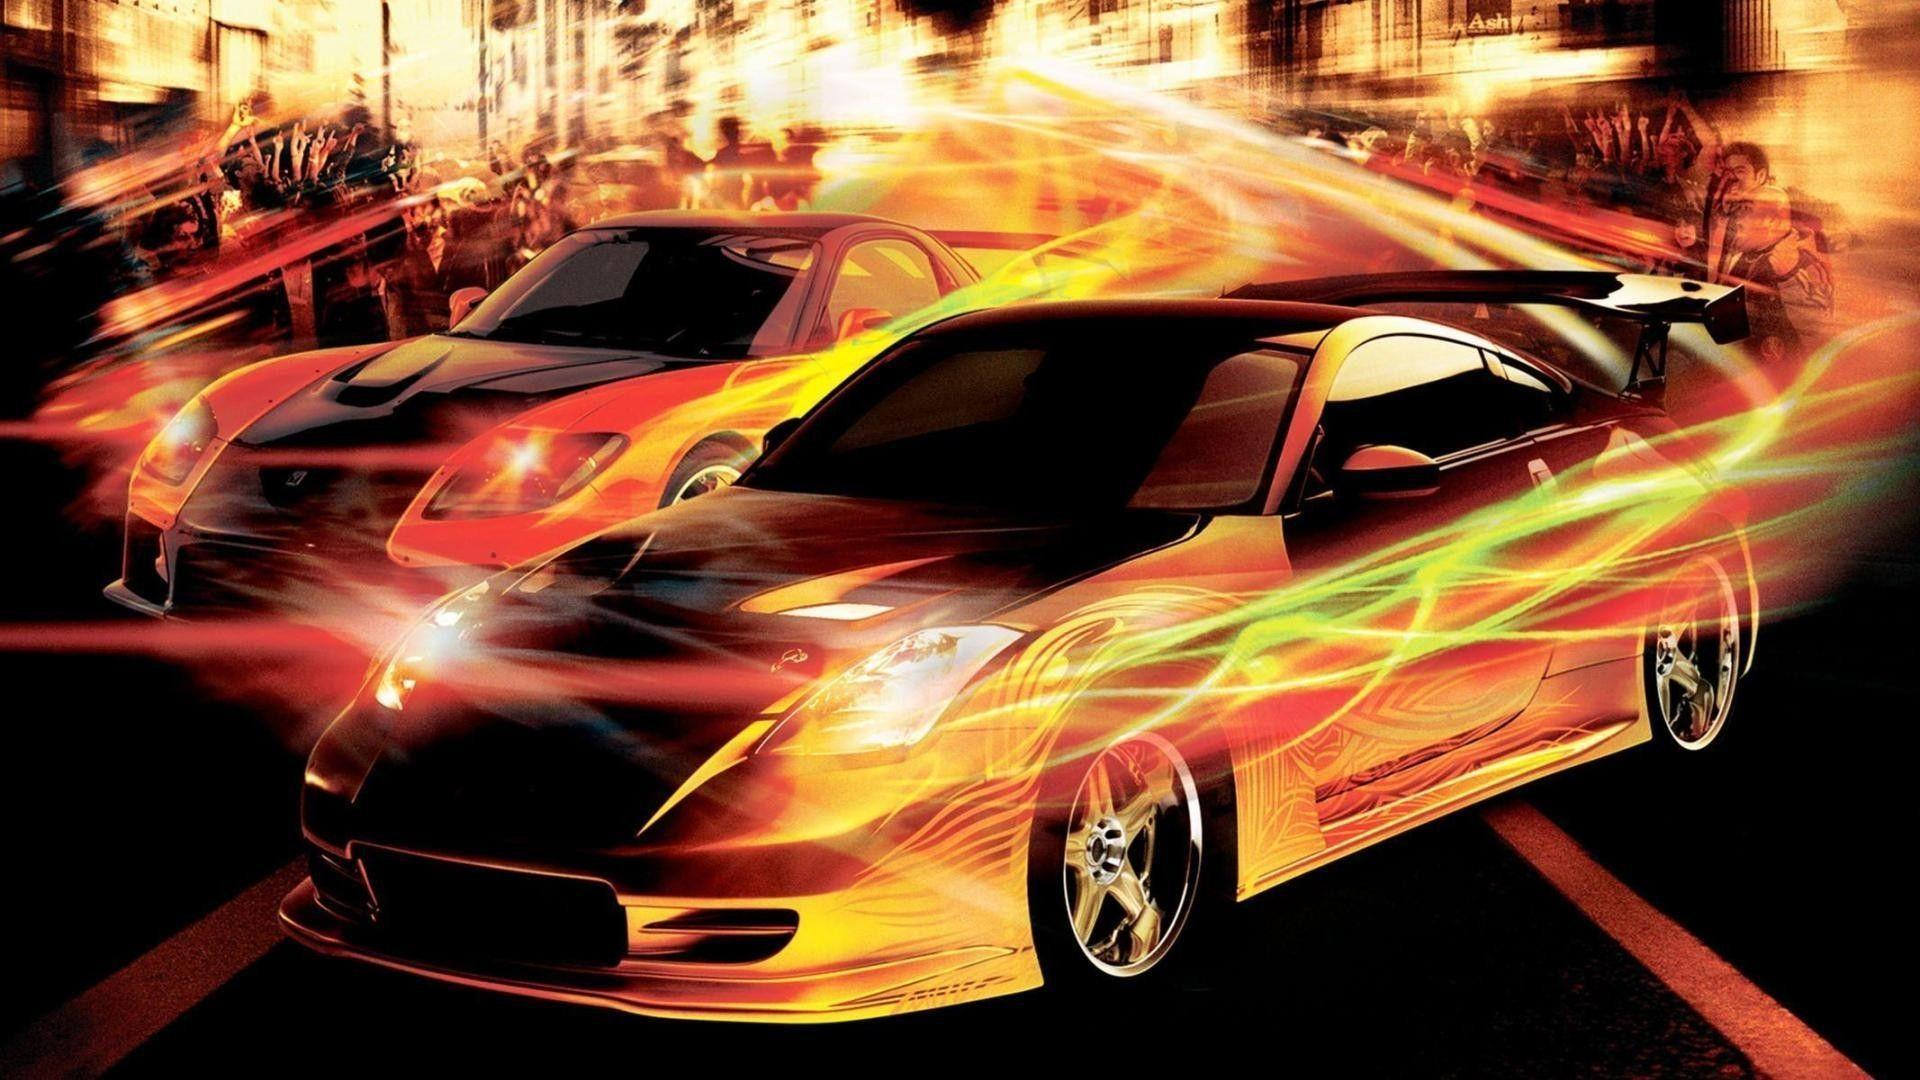 Fast Car Wallpaper Cave Fast And Furious Cars Wallpapers Wallpaper Cave